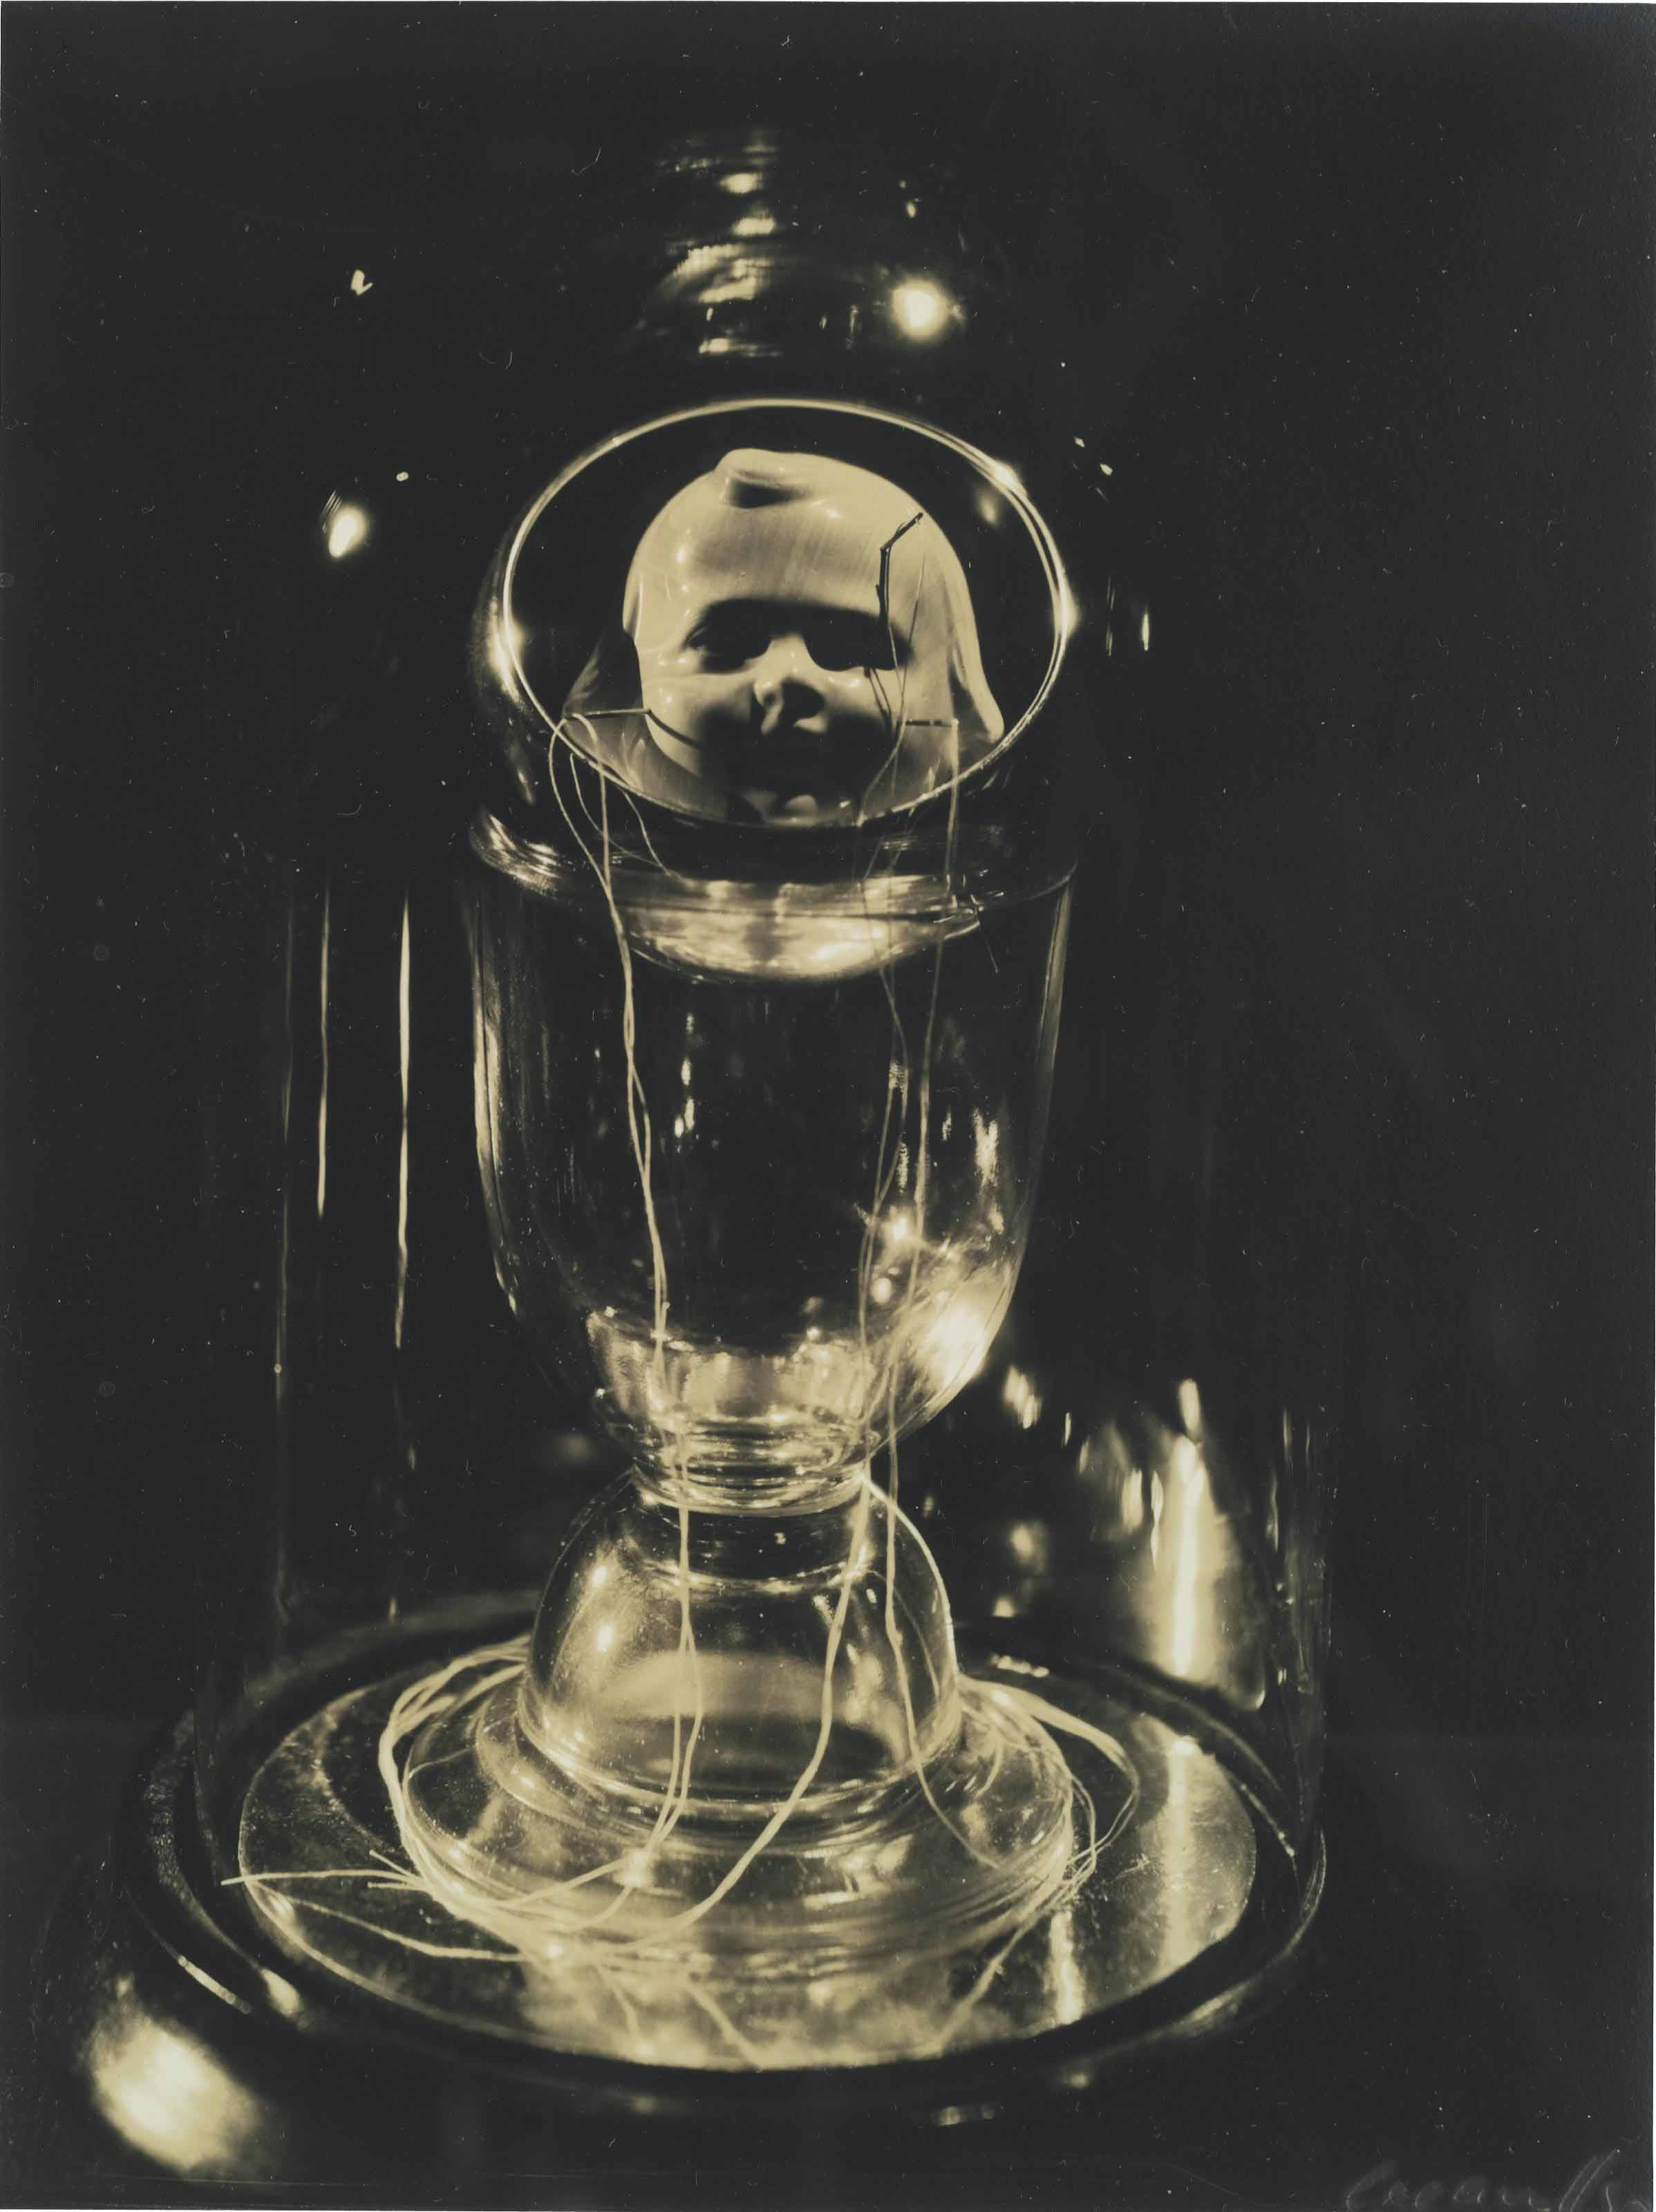 Object by Joseph Cornell, New York, 1933